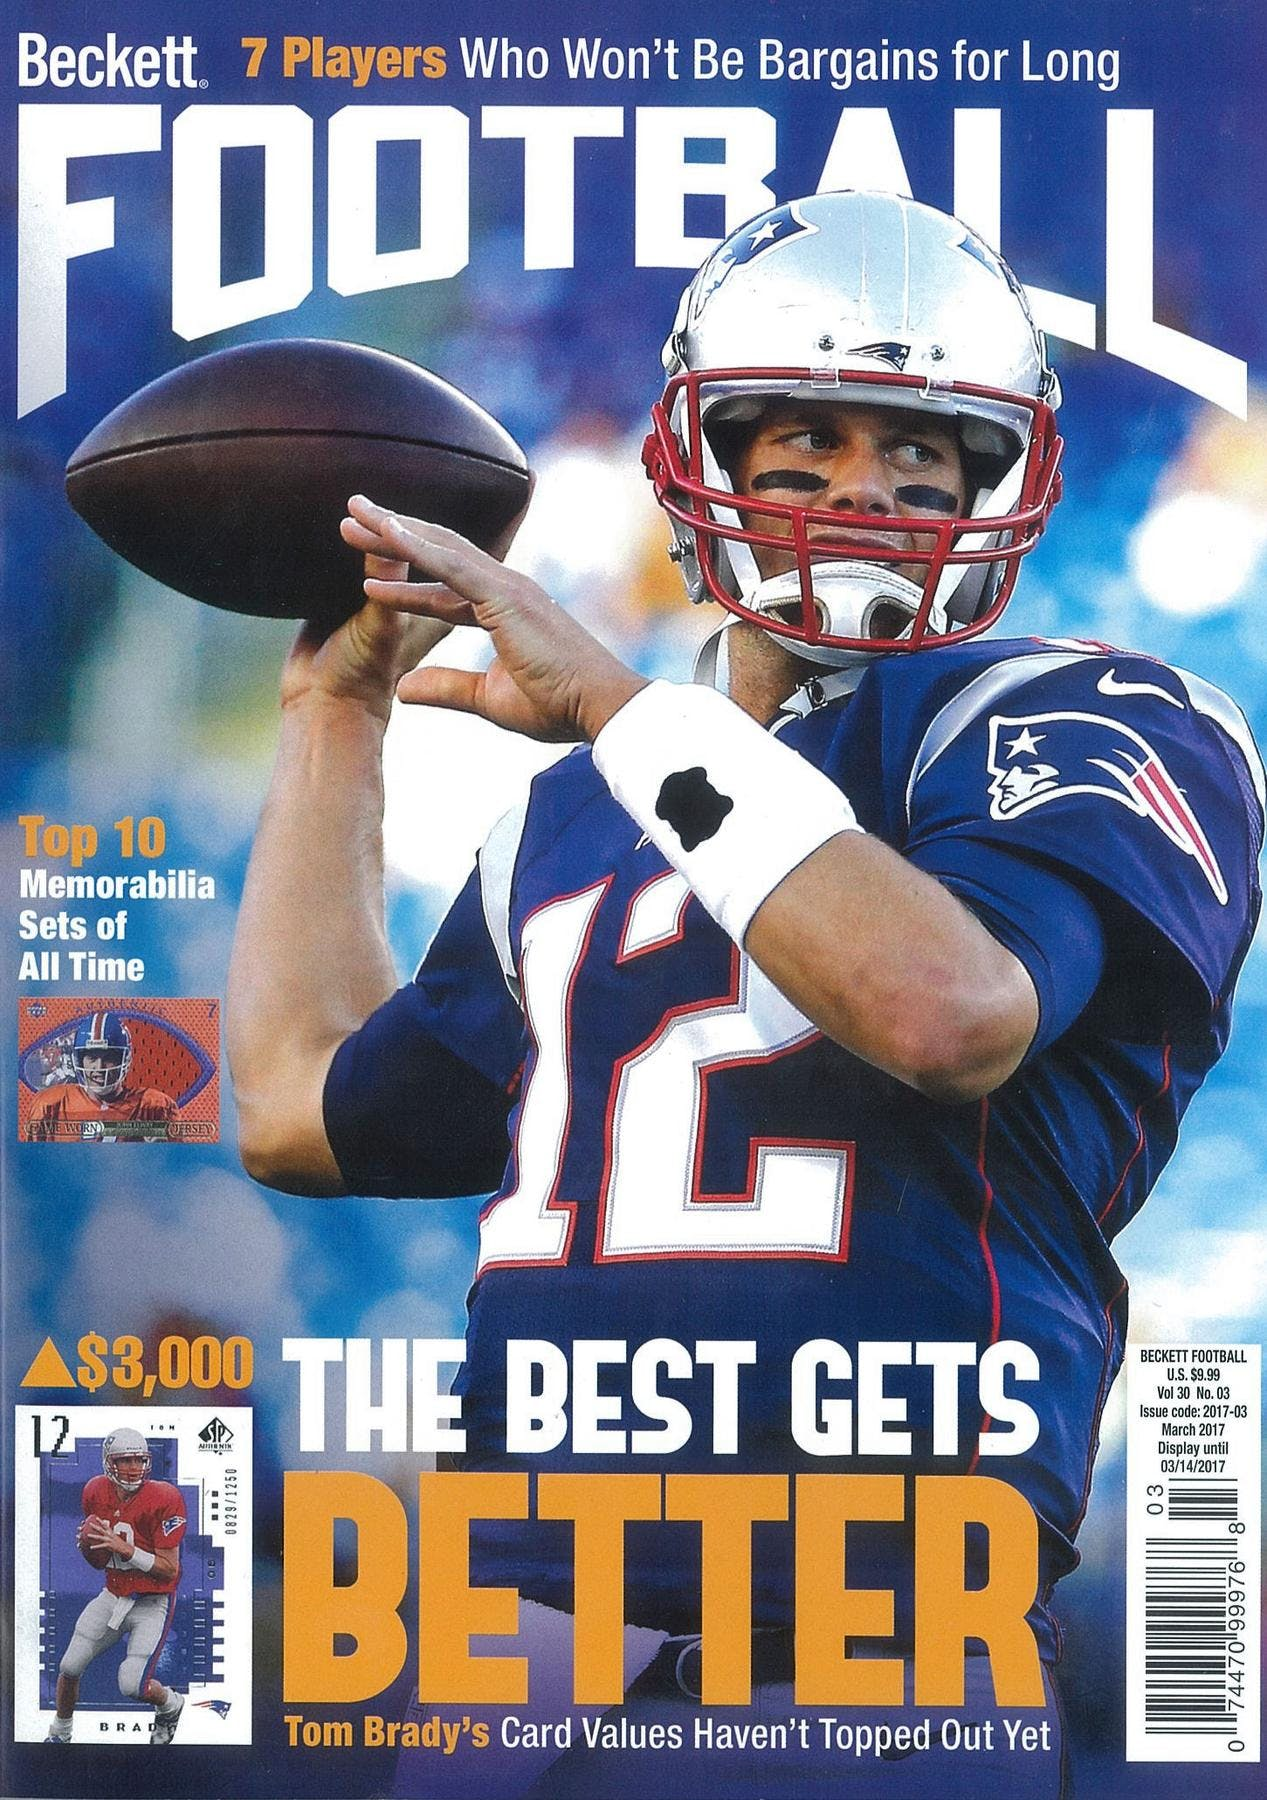 2017 Beckett Football Monthly Price Guide (#314 March) (Tom Brady)